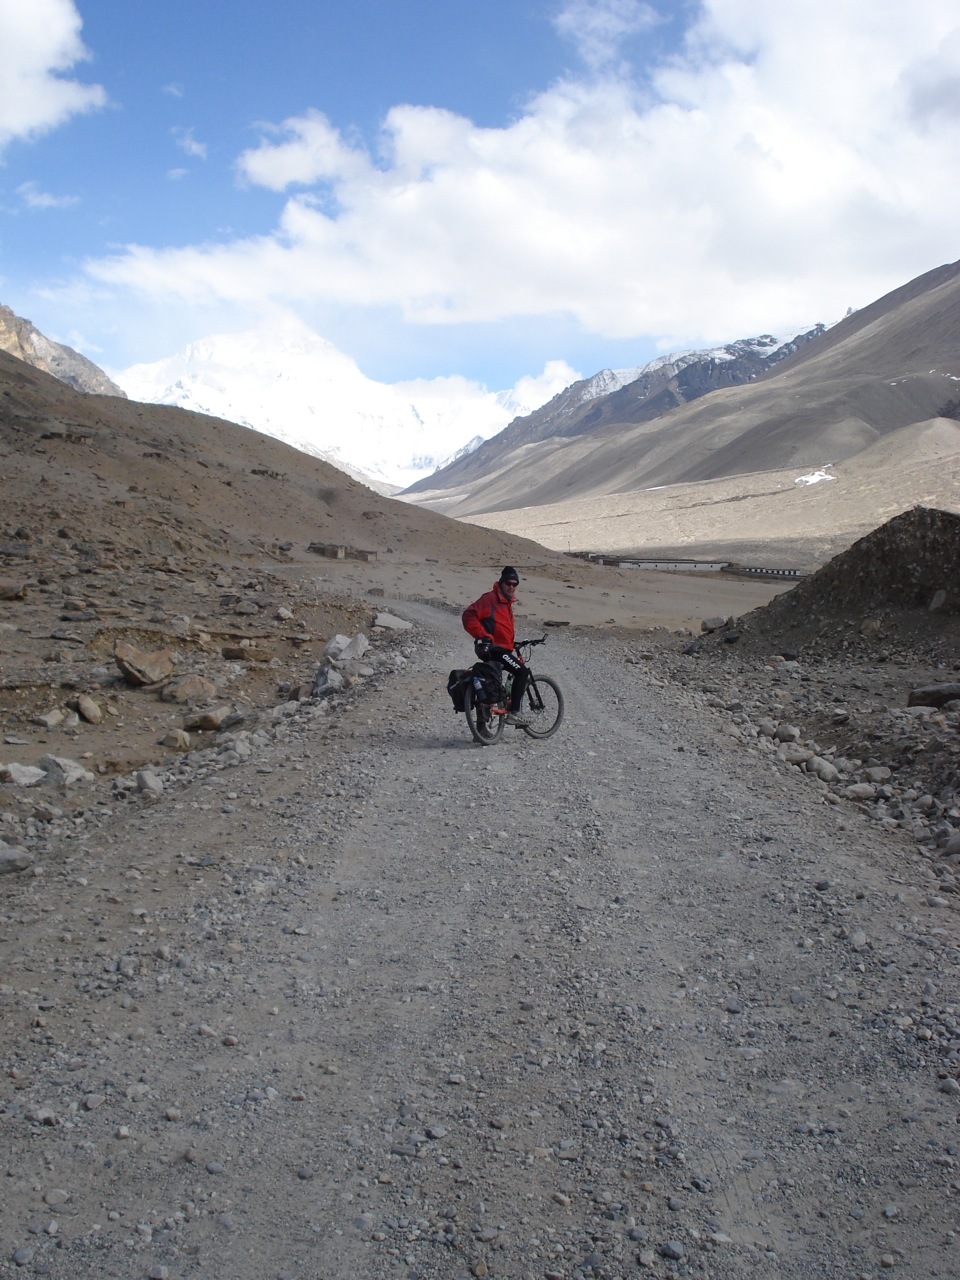 highway to everest mount - photo #13